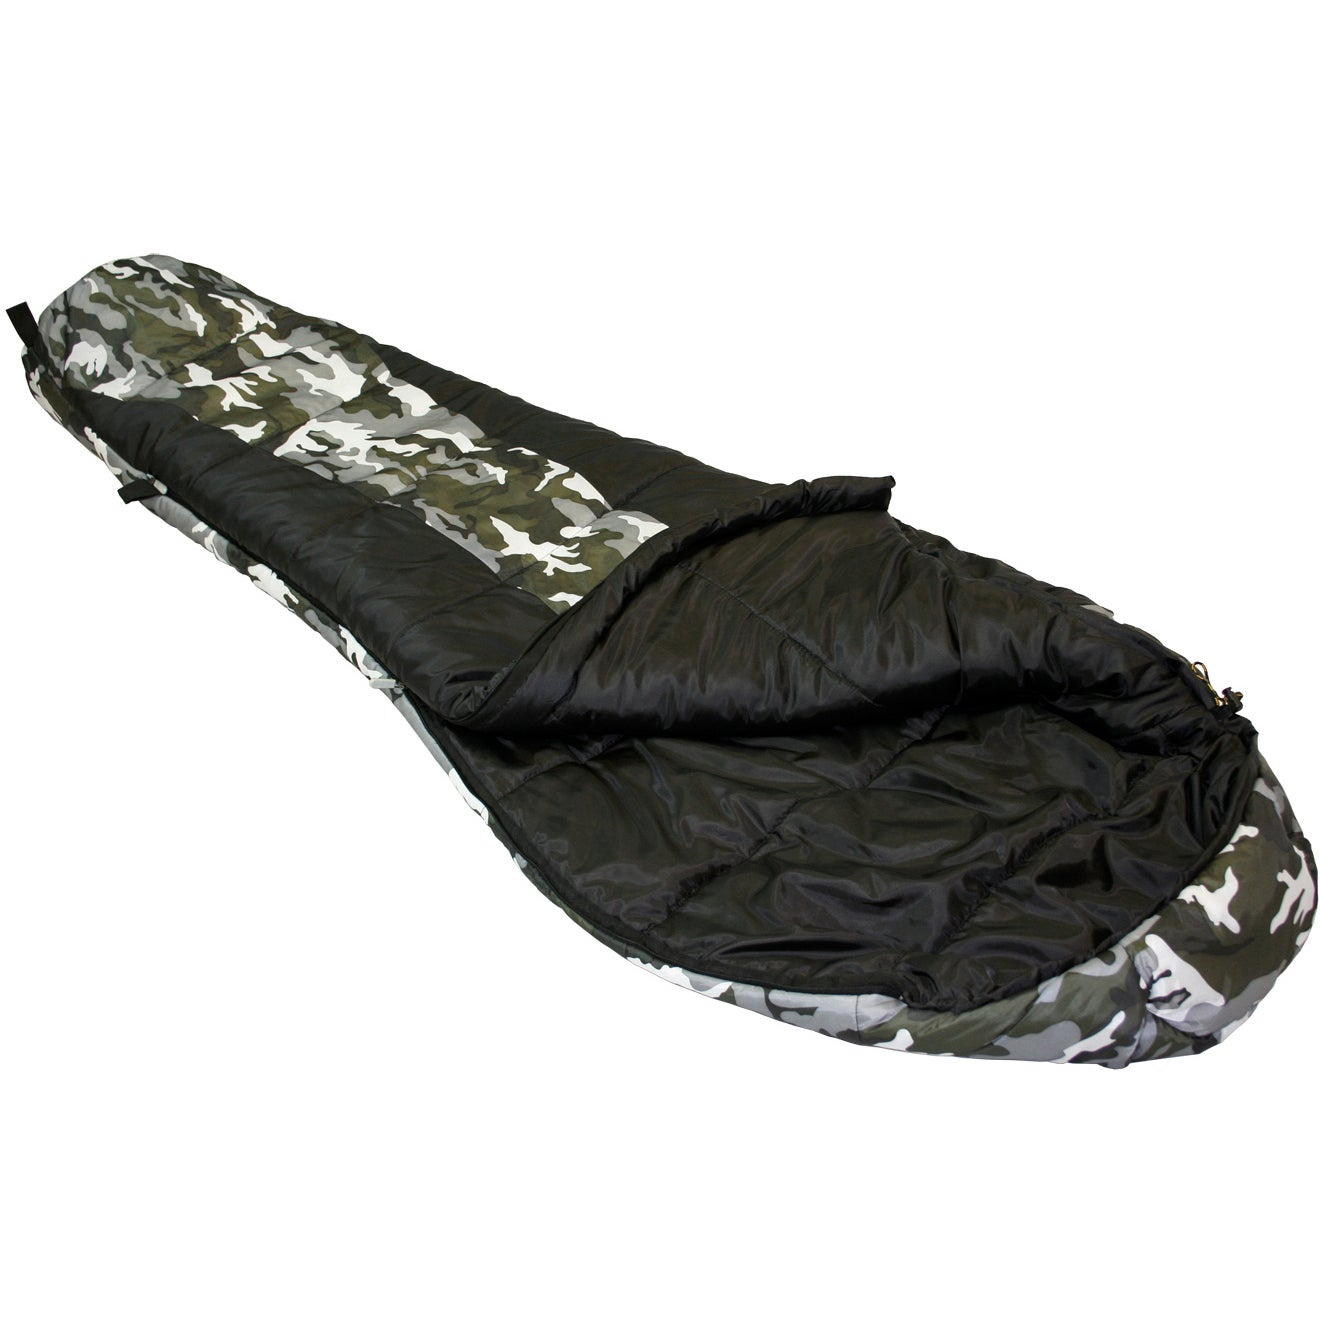 Ledge River Jr 0 Degree Sleeping Bag Free Shipping On Orders Over 45 4780926